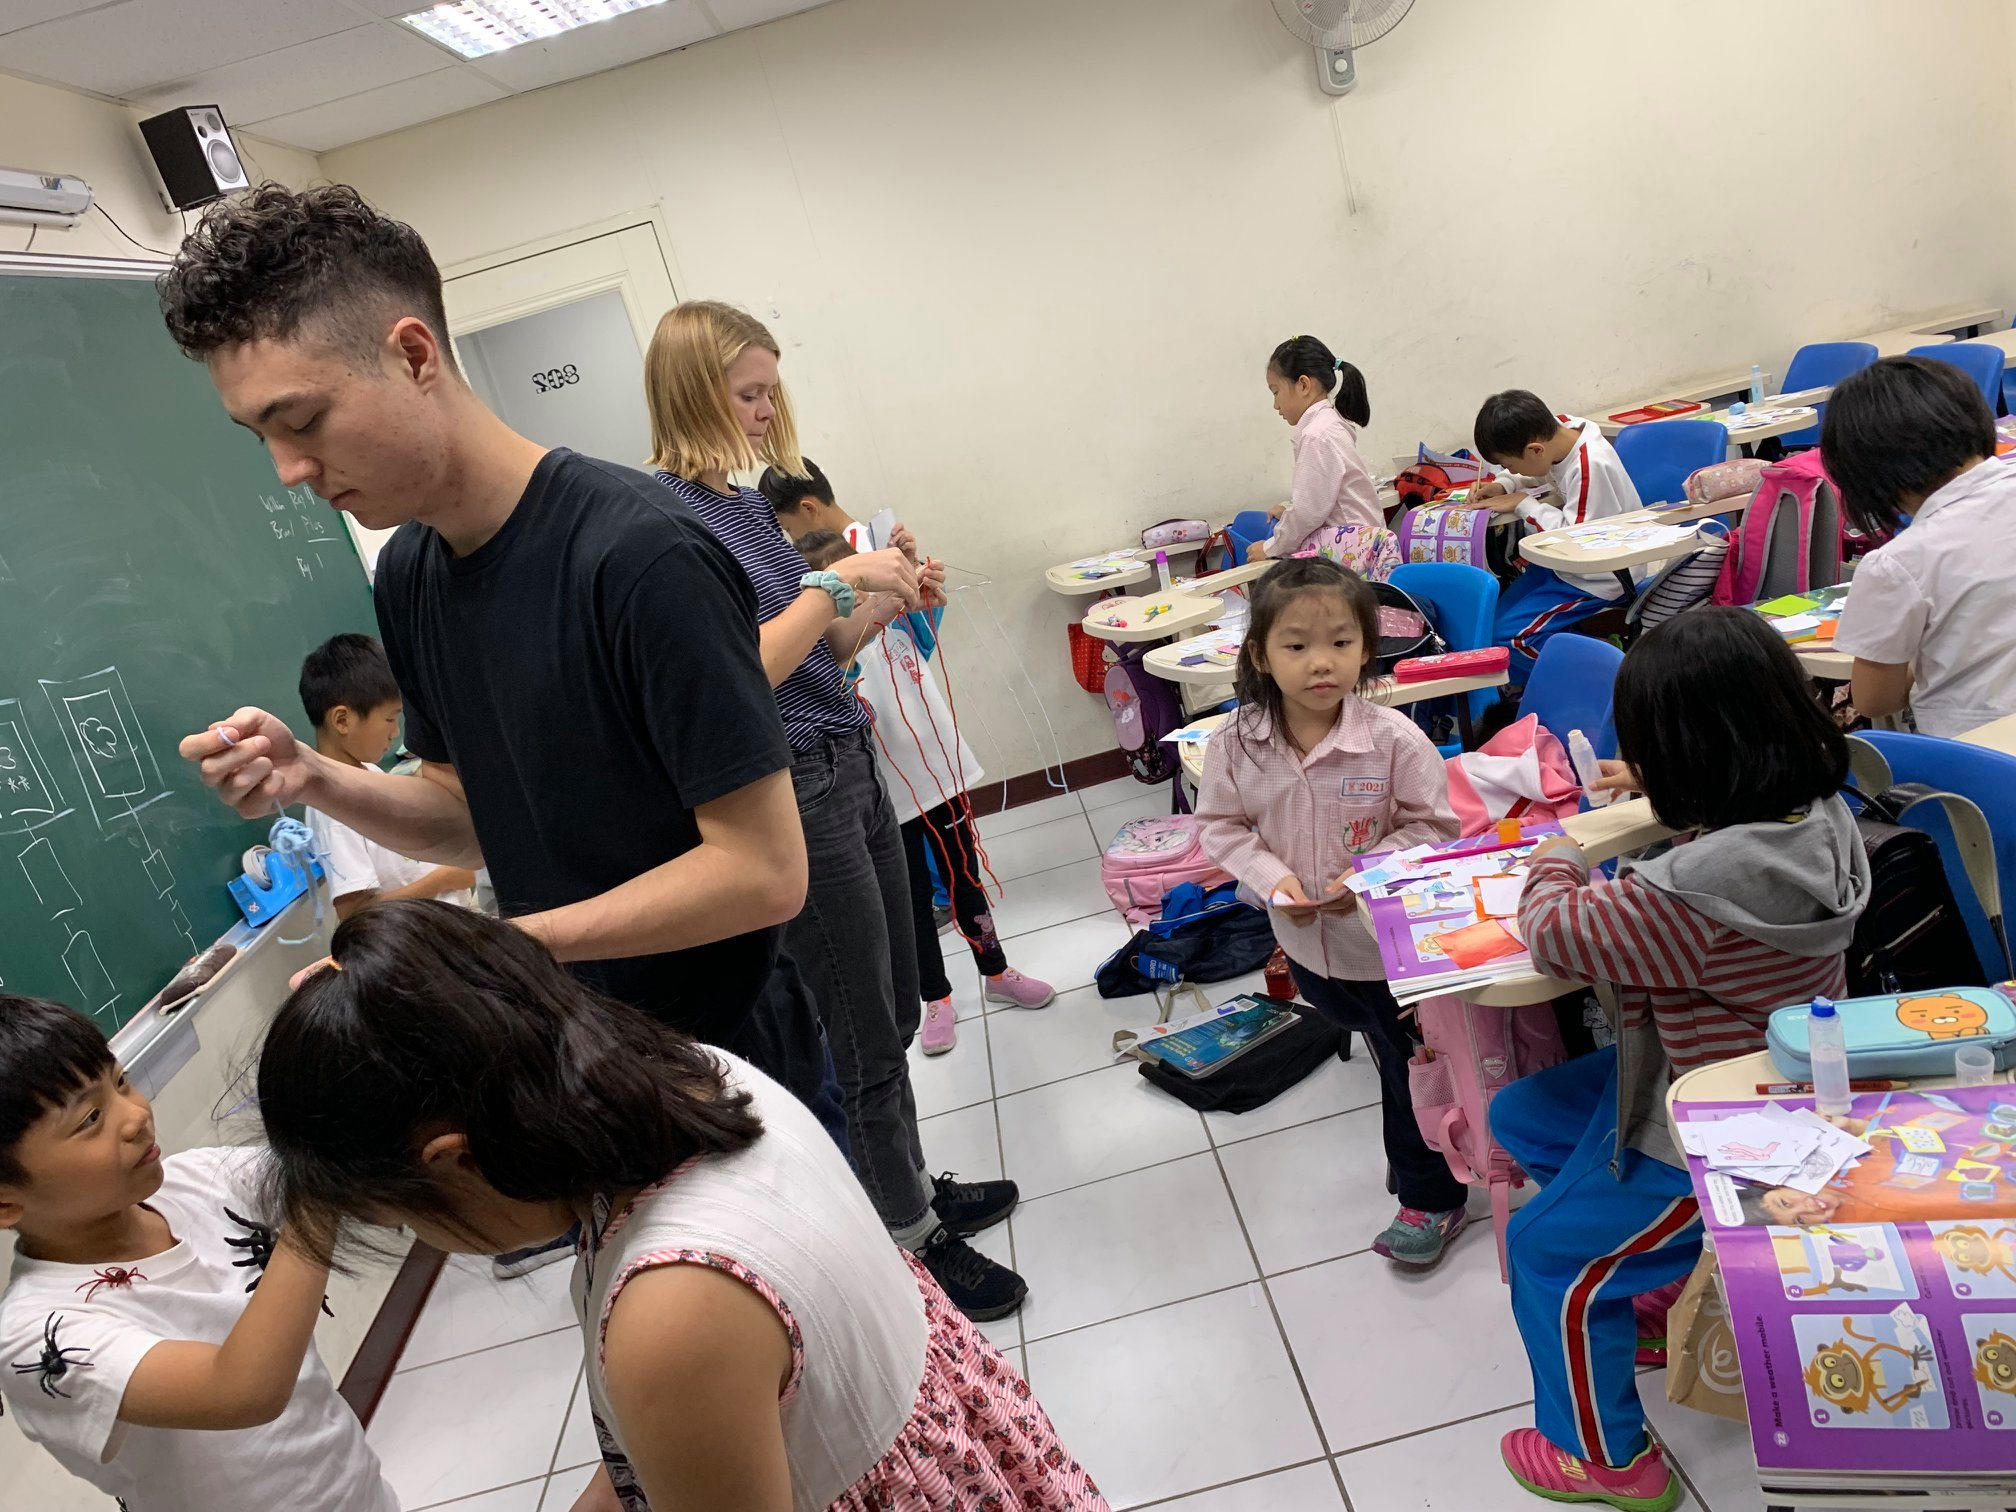 Teaching English and Living in Taiwan Jobs Available 教學工作, J&L English Competitive Pay! Great Benefits! Long-Term Position in a Stable Well-Run Progressive School! image